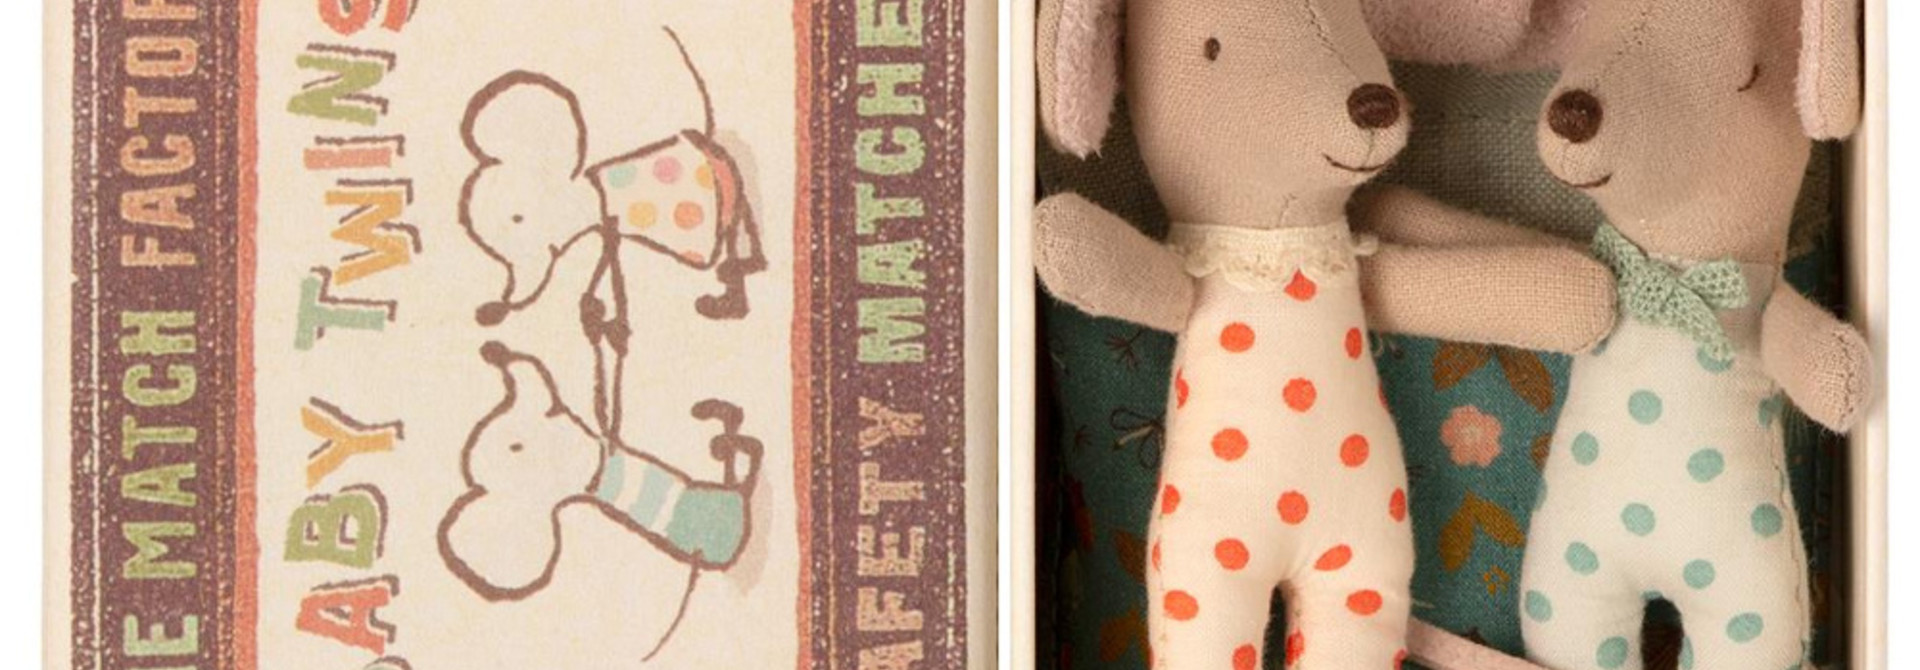 Baby Twins in Matchbox - 8 cm